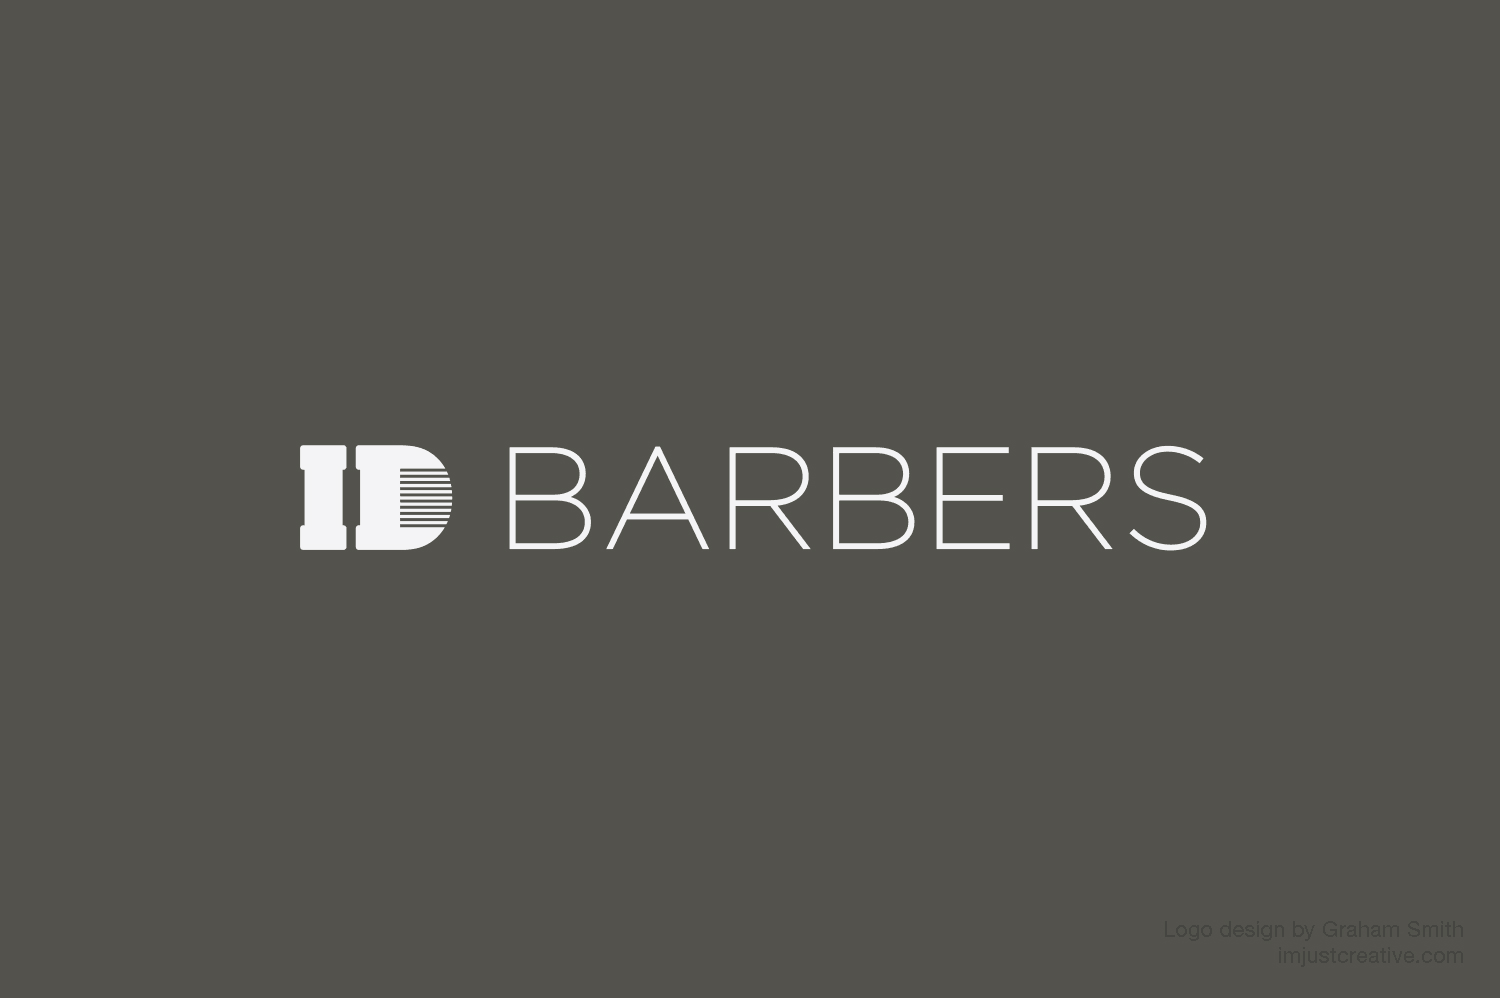 ID Barbers Logo Design by Graham Smith